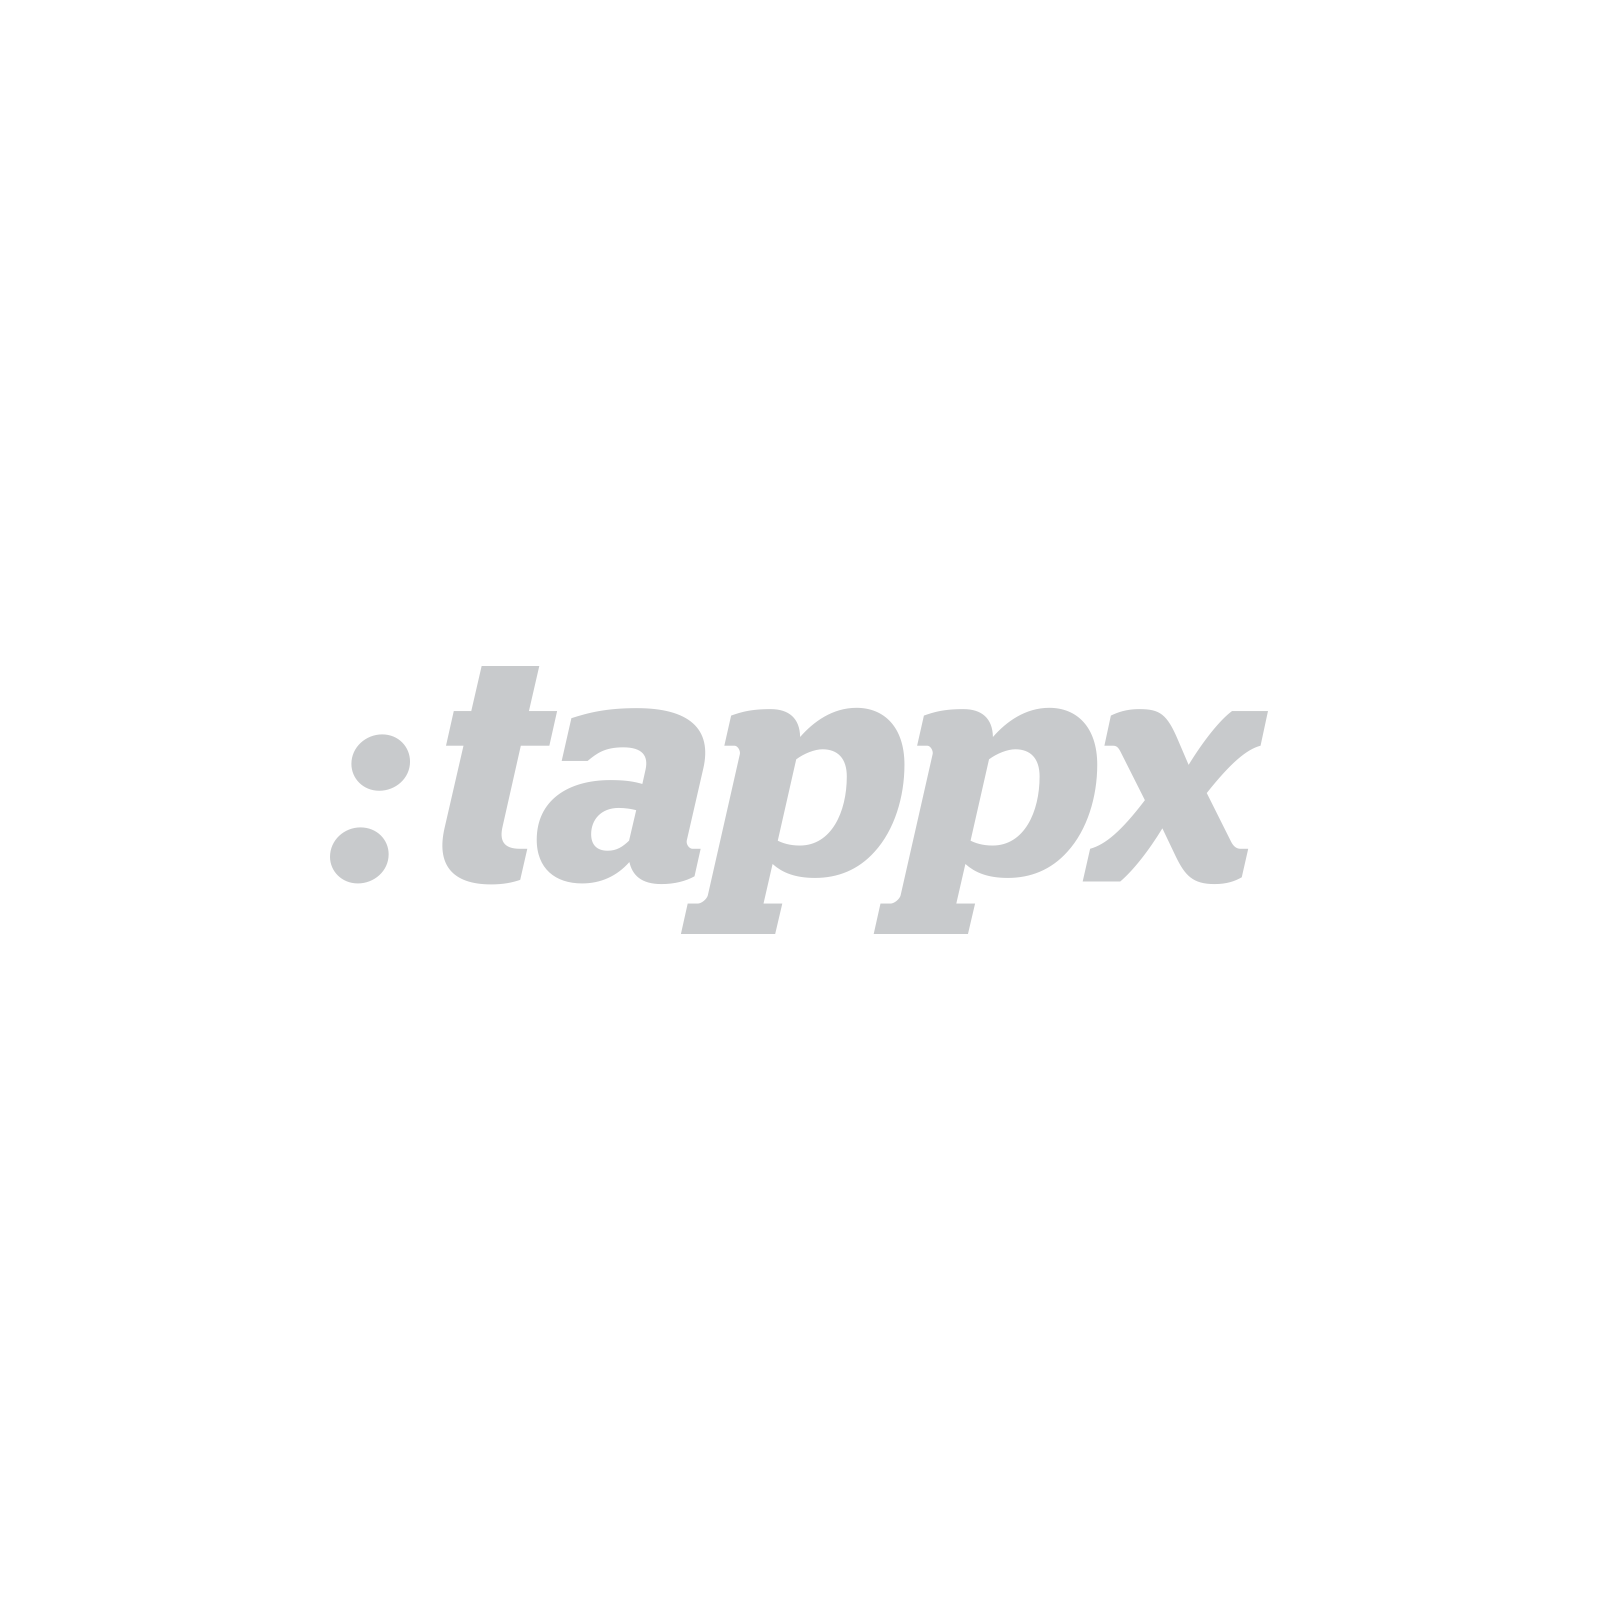 Copy of tappx Logo